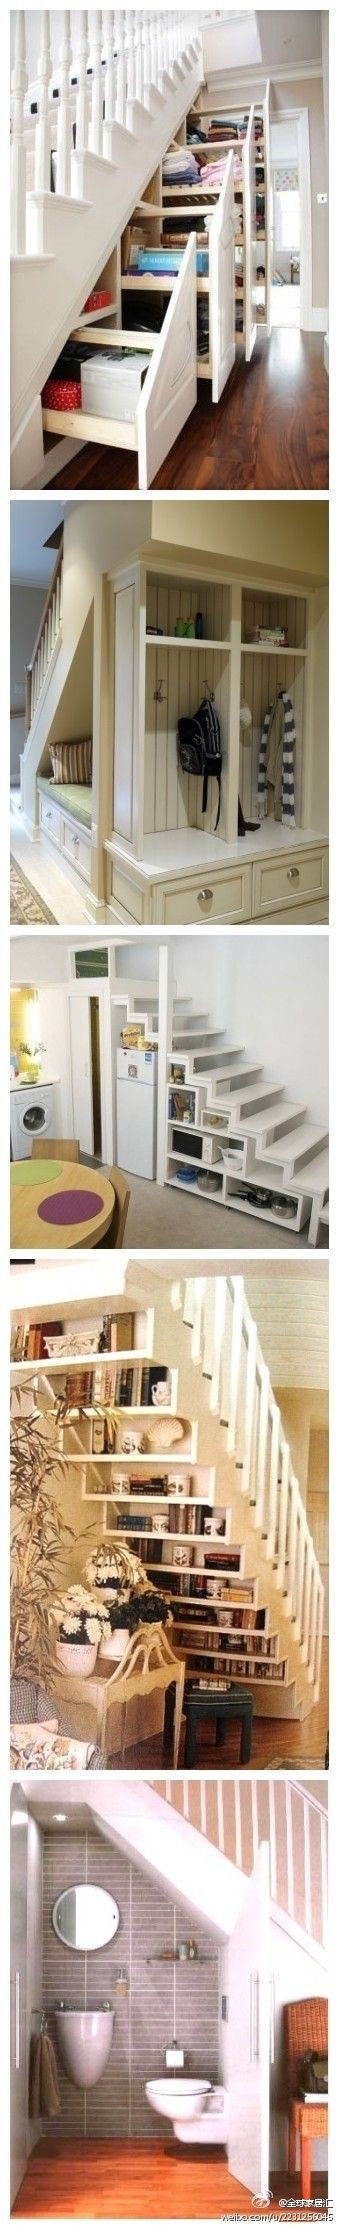 Storage Ideas and making the most out of the space. smart stairs. Love it.